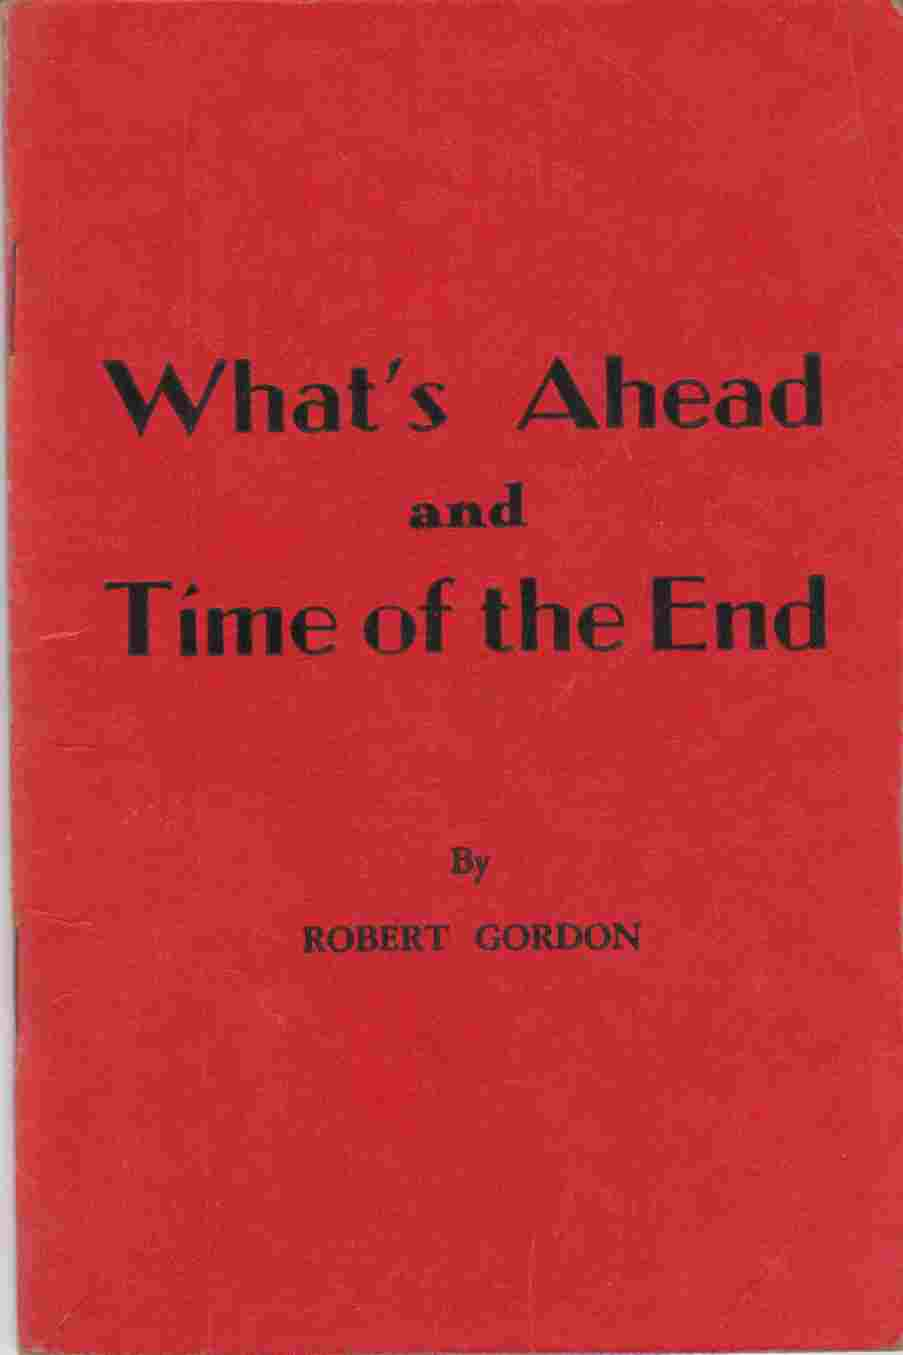 Image for What's Ahead As Received by Samuel Potter and by Him Recounted to Robert Gordon and Time of the End